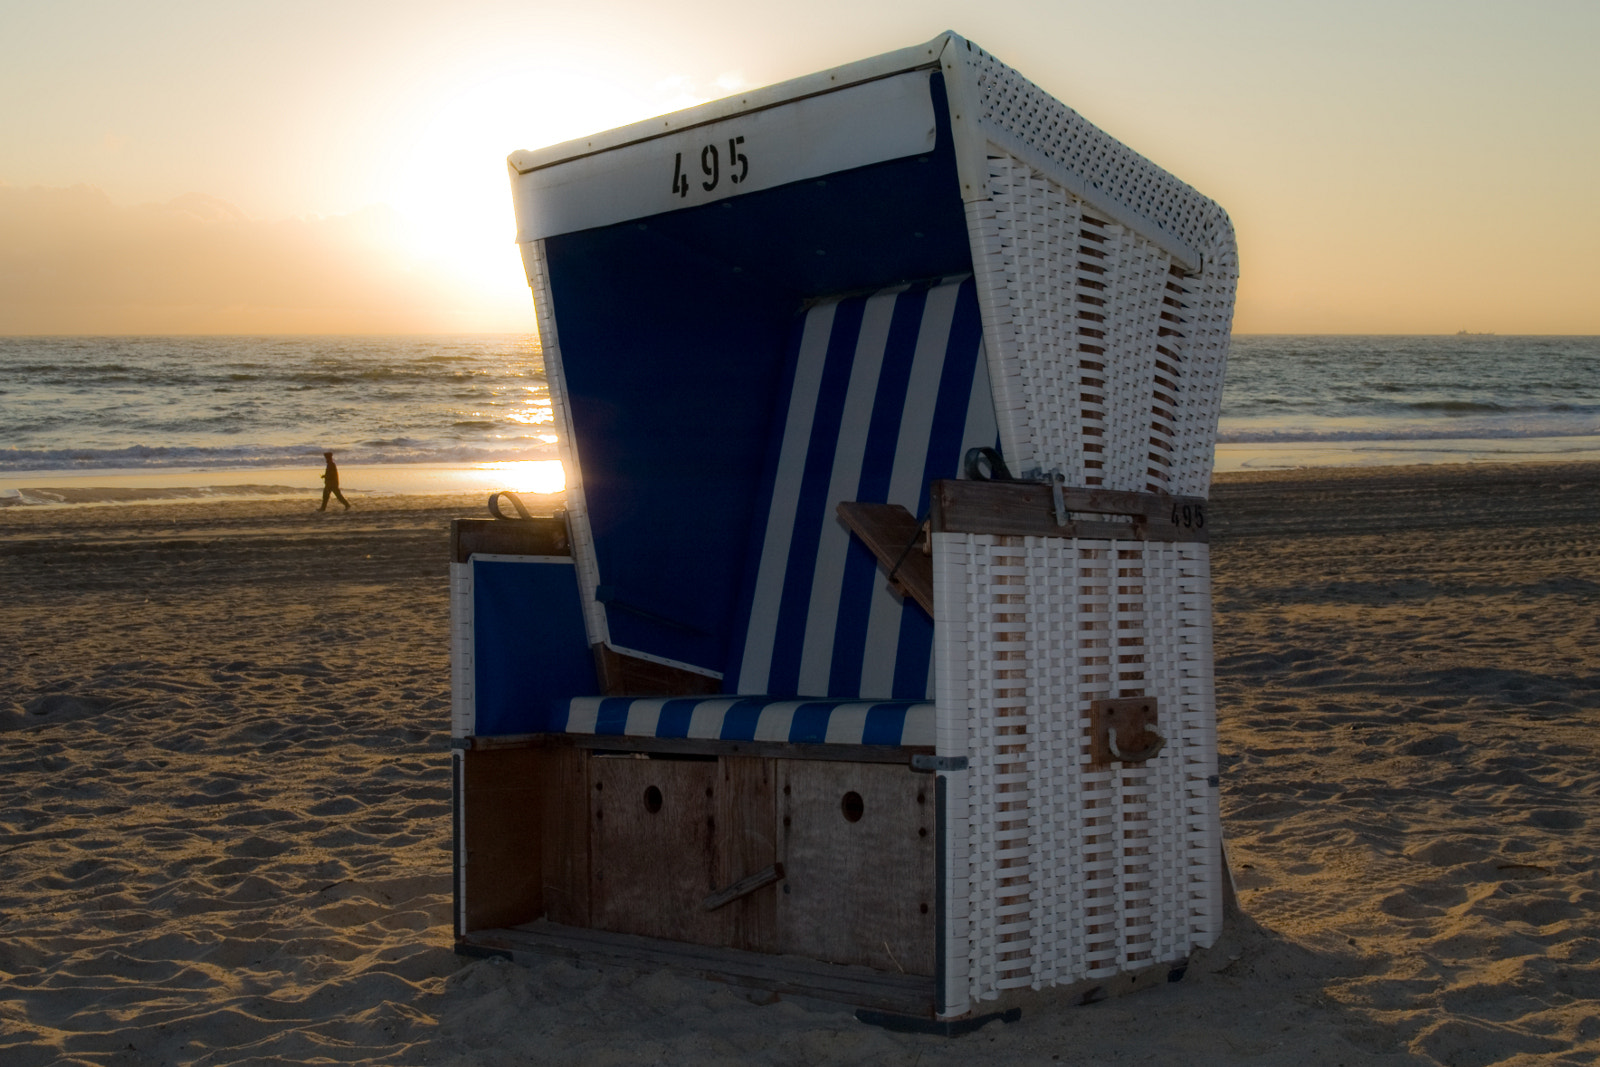 Photograph Beach chair 495 | Strandkorb 495 by Gerald Backmeister on 500px